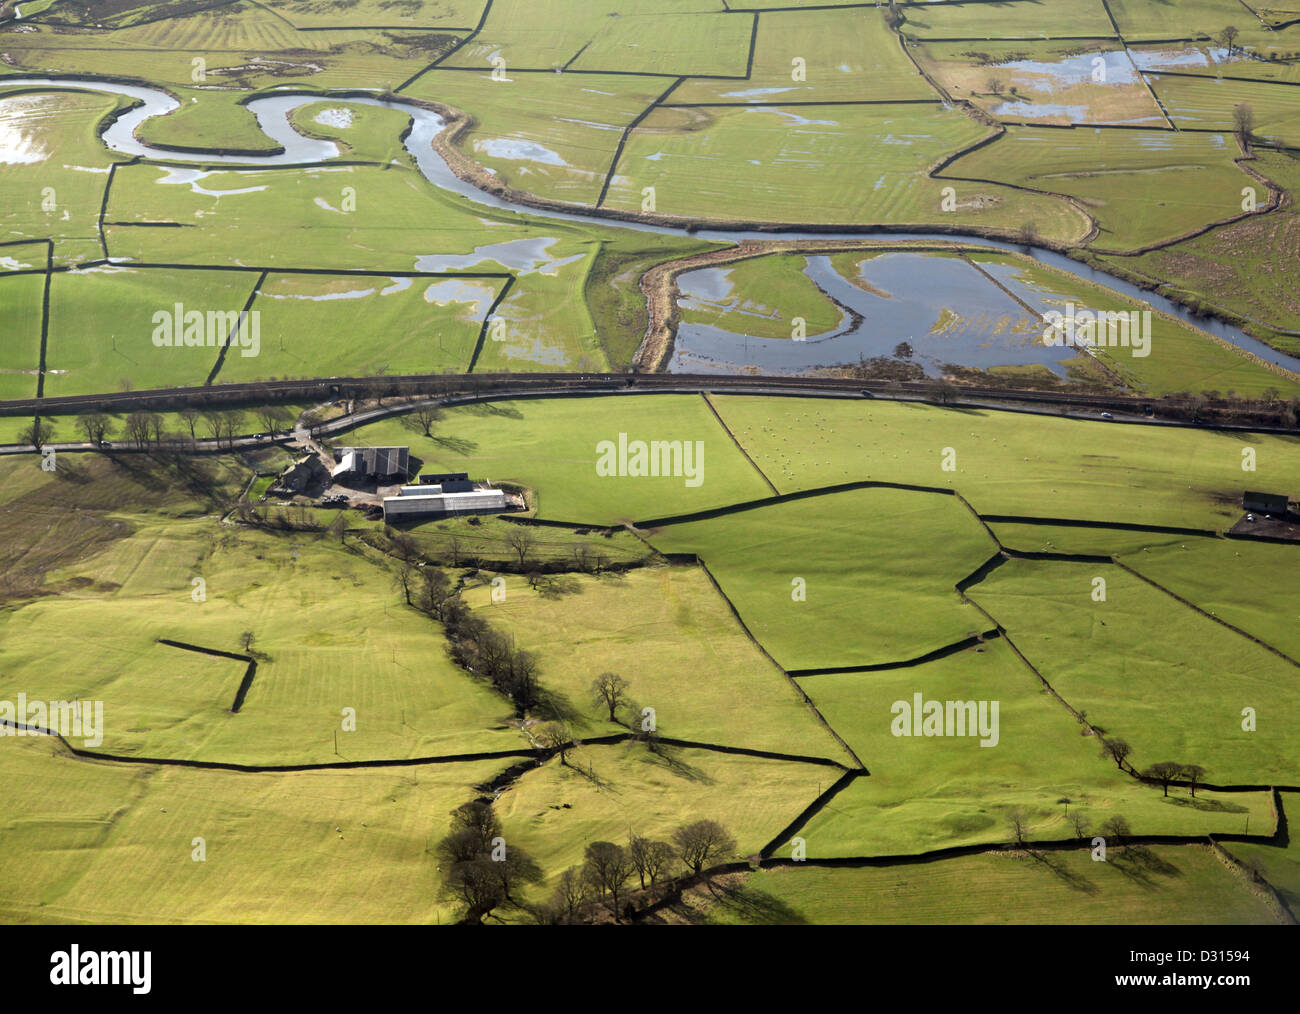 aerial view of dry stone walls and typical English countryside - Stock Image